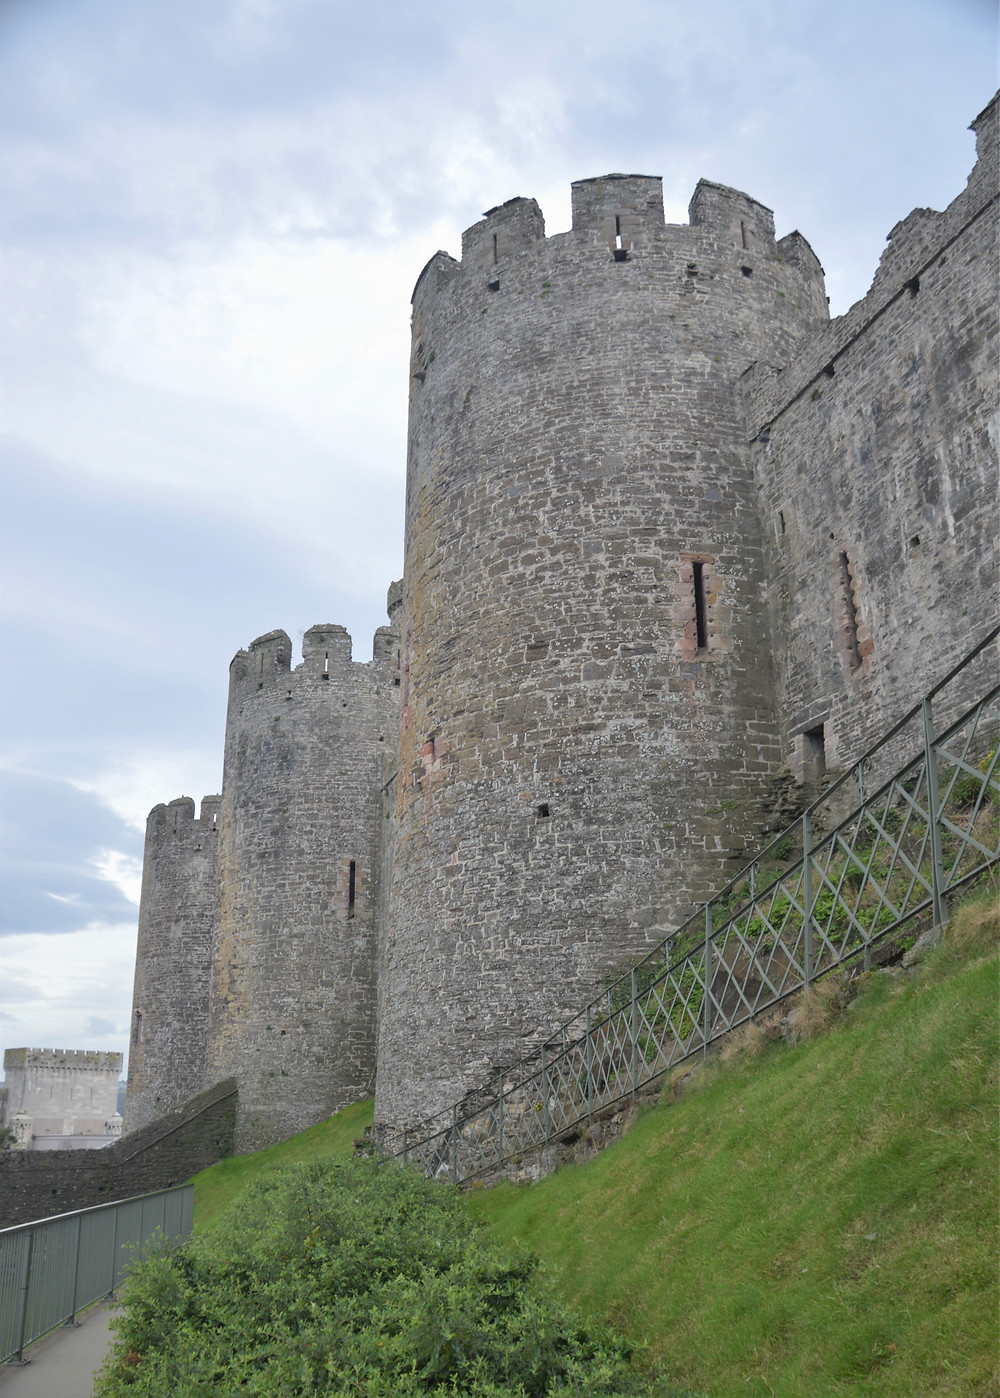 Conwy Castle towers over 30 ft in diameter; 15 feet thick walls; 70 feet tall